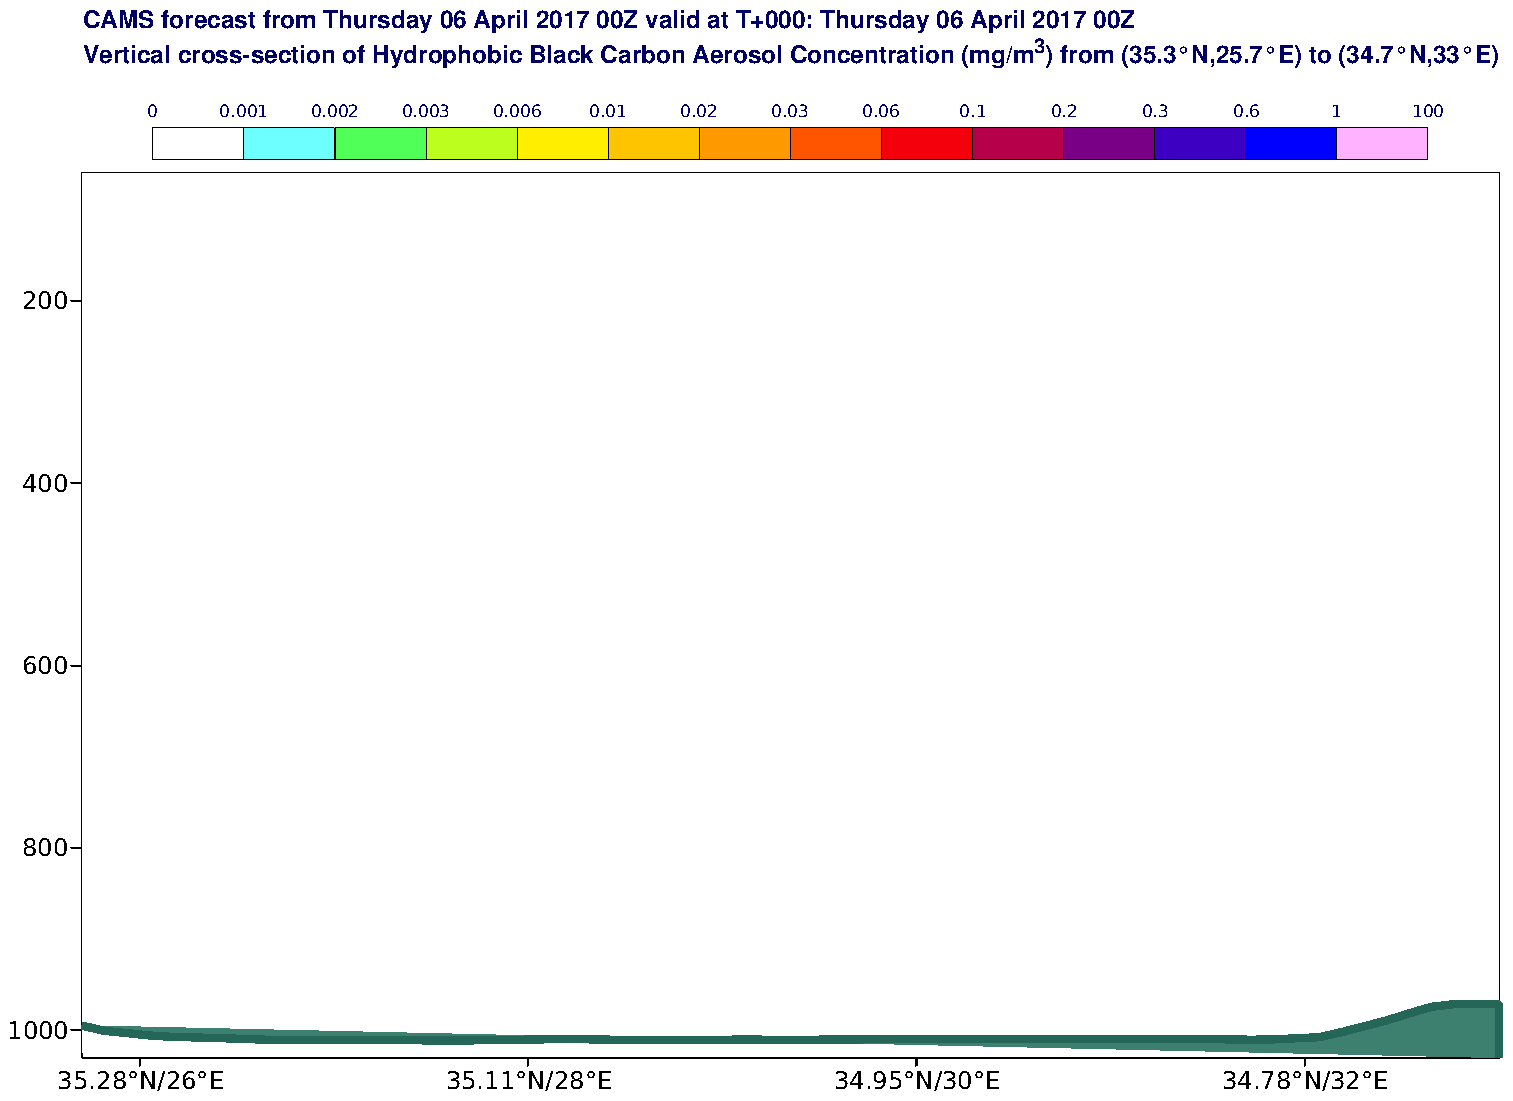 Vertical cross-section of Hydrophobic Black Carbon Aerosol Concentration (mg/m3) valid at T0 - 2017-04-06 00:00